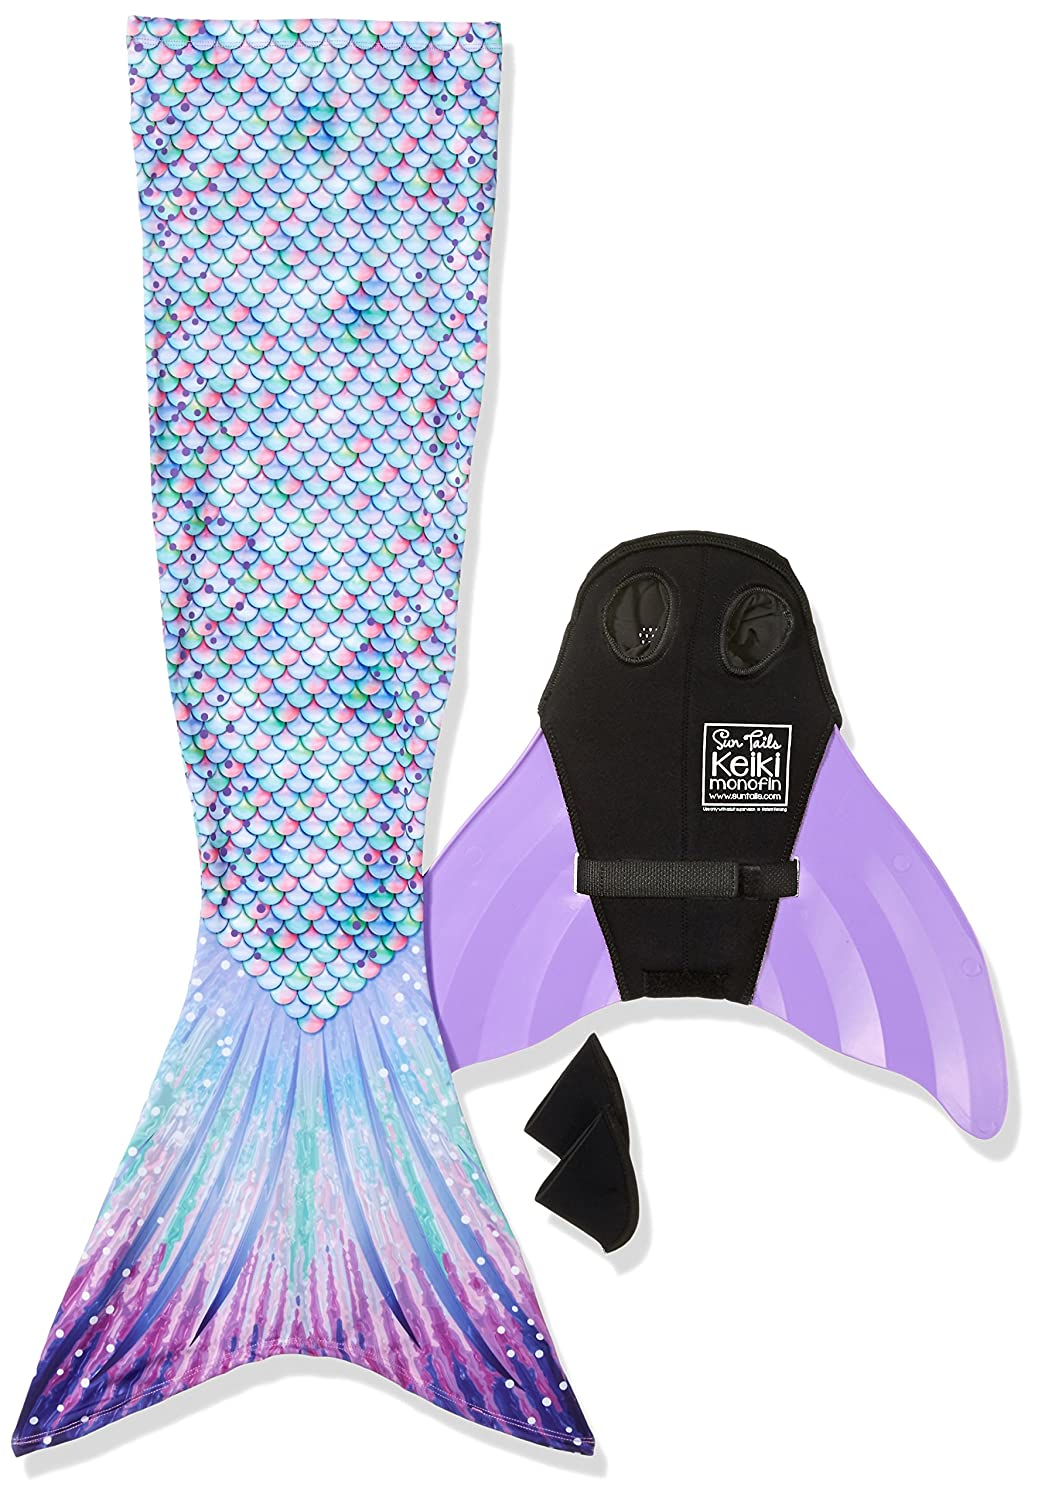 Sun Tail Mermaid Designer Mermaid Tail + Monofin for Swimming